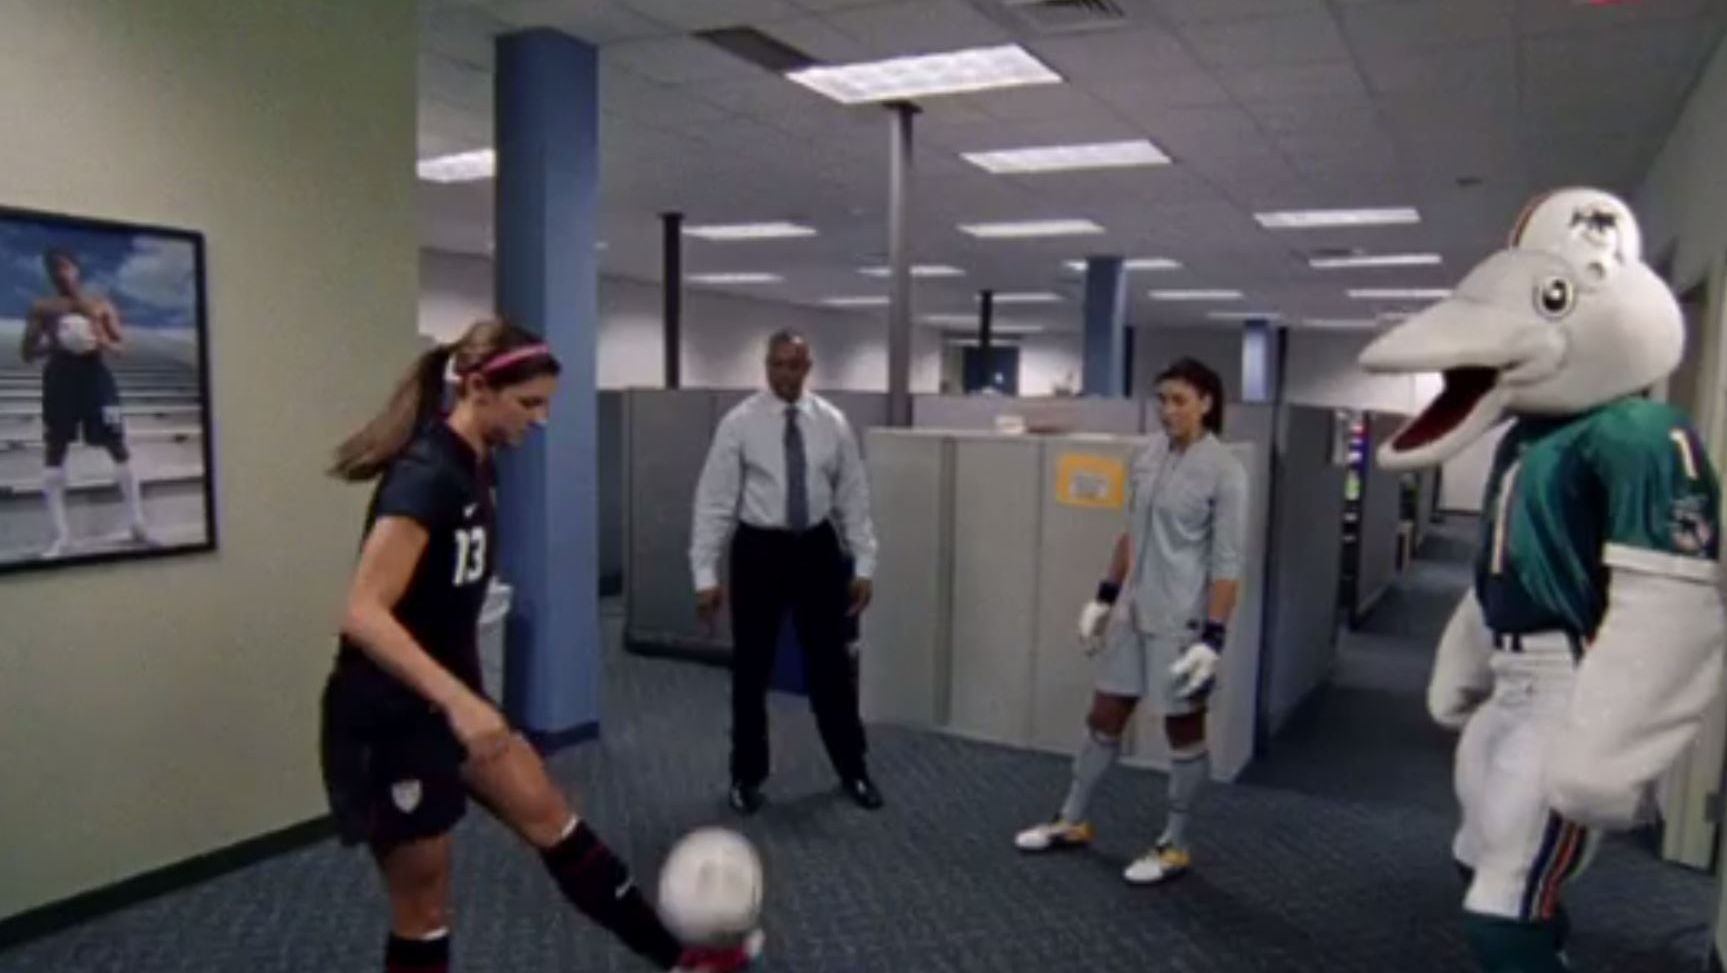 This Is SportsCenter: Alex Morgan & Hope Solo